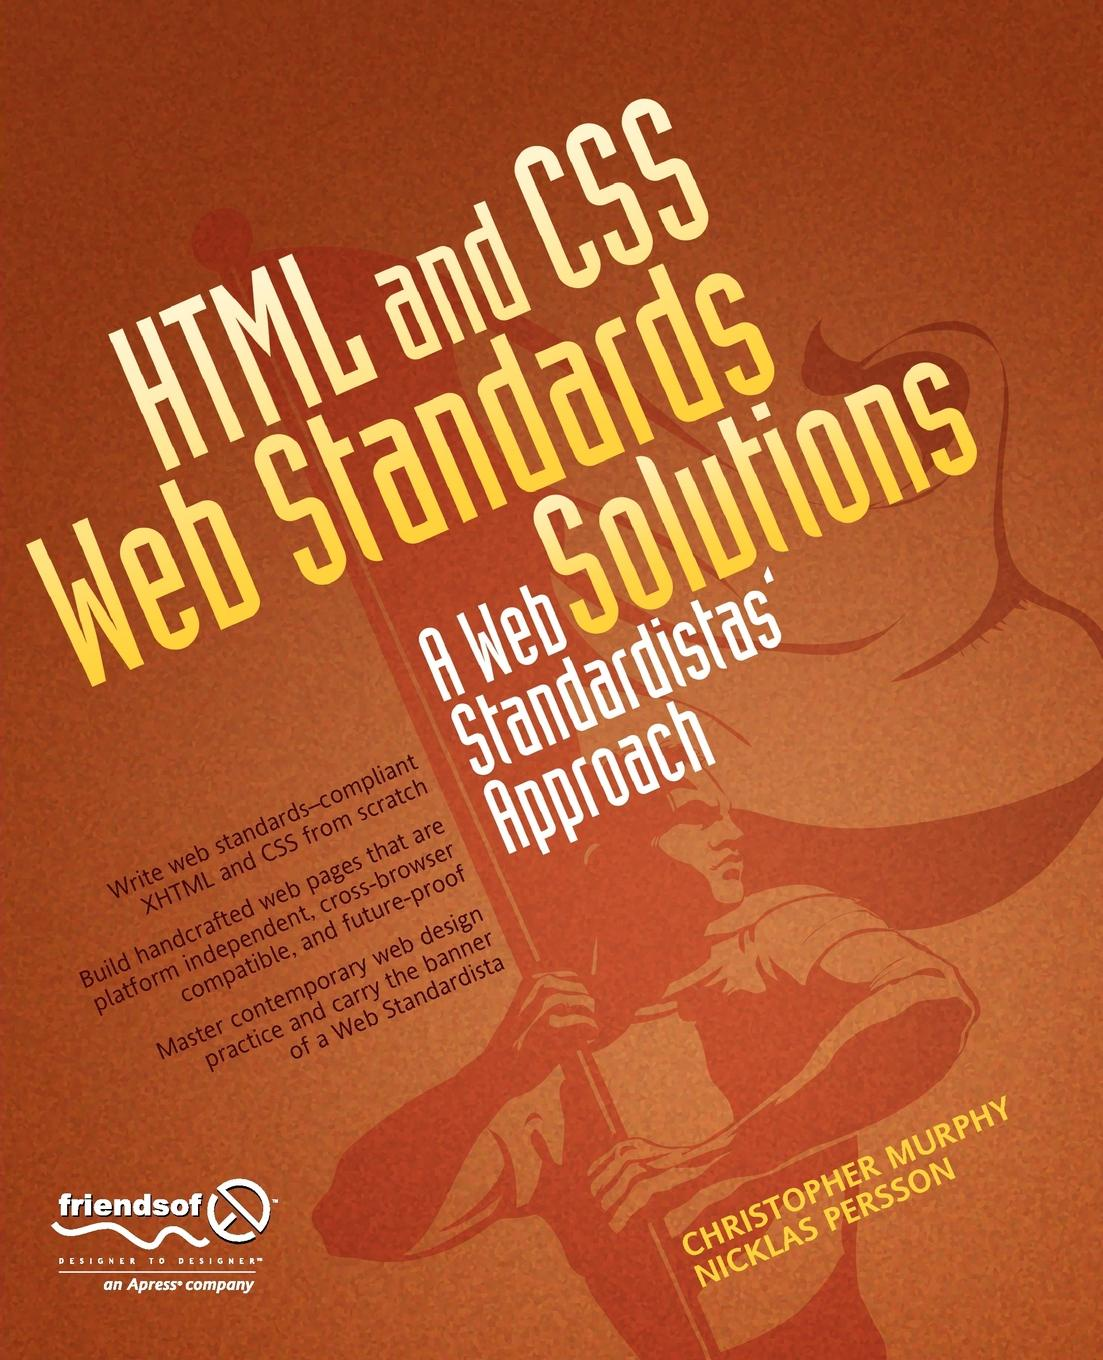 Christopher Murphy, Nicklas Persson HTML and CSS Web Standards Solutions. A Web Standardistas' Approach web